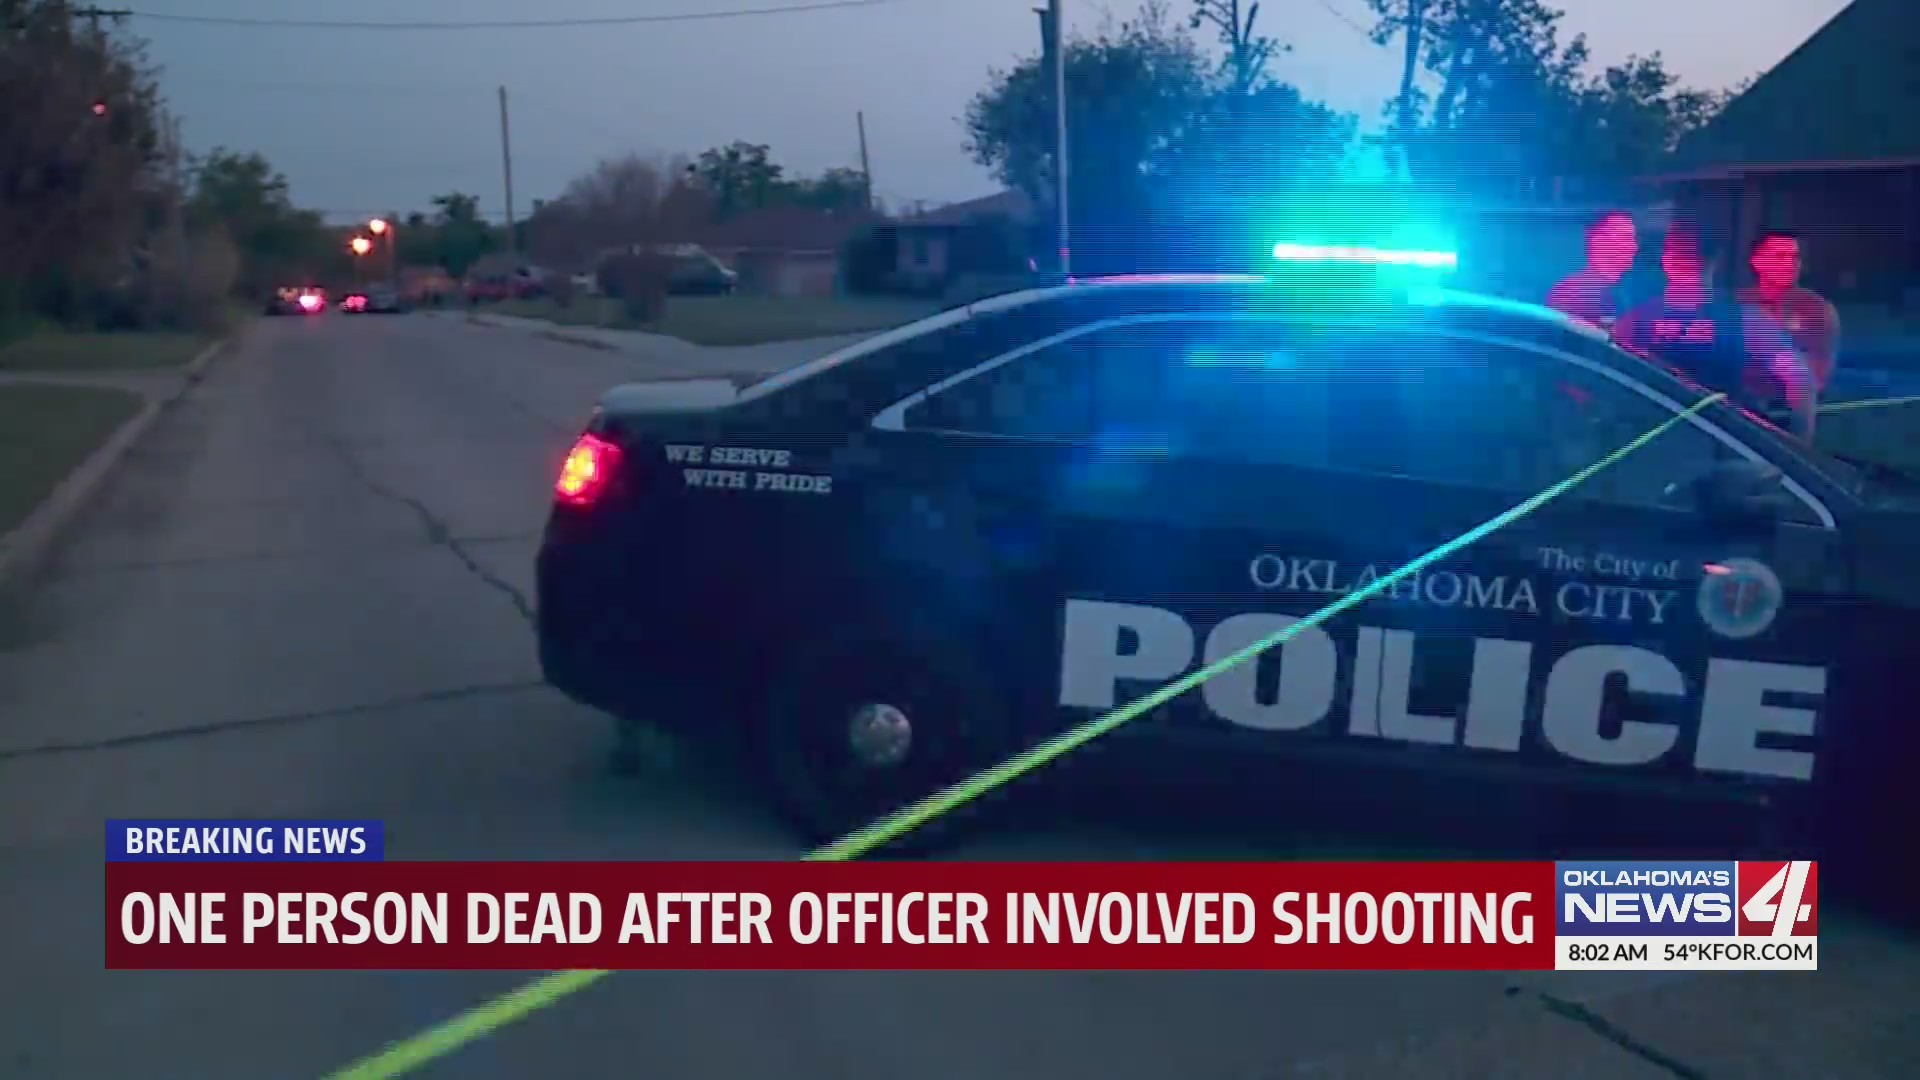 image of OKC Police car